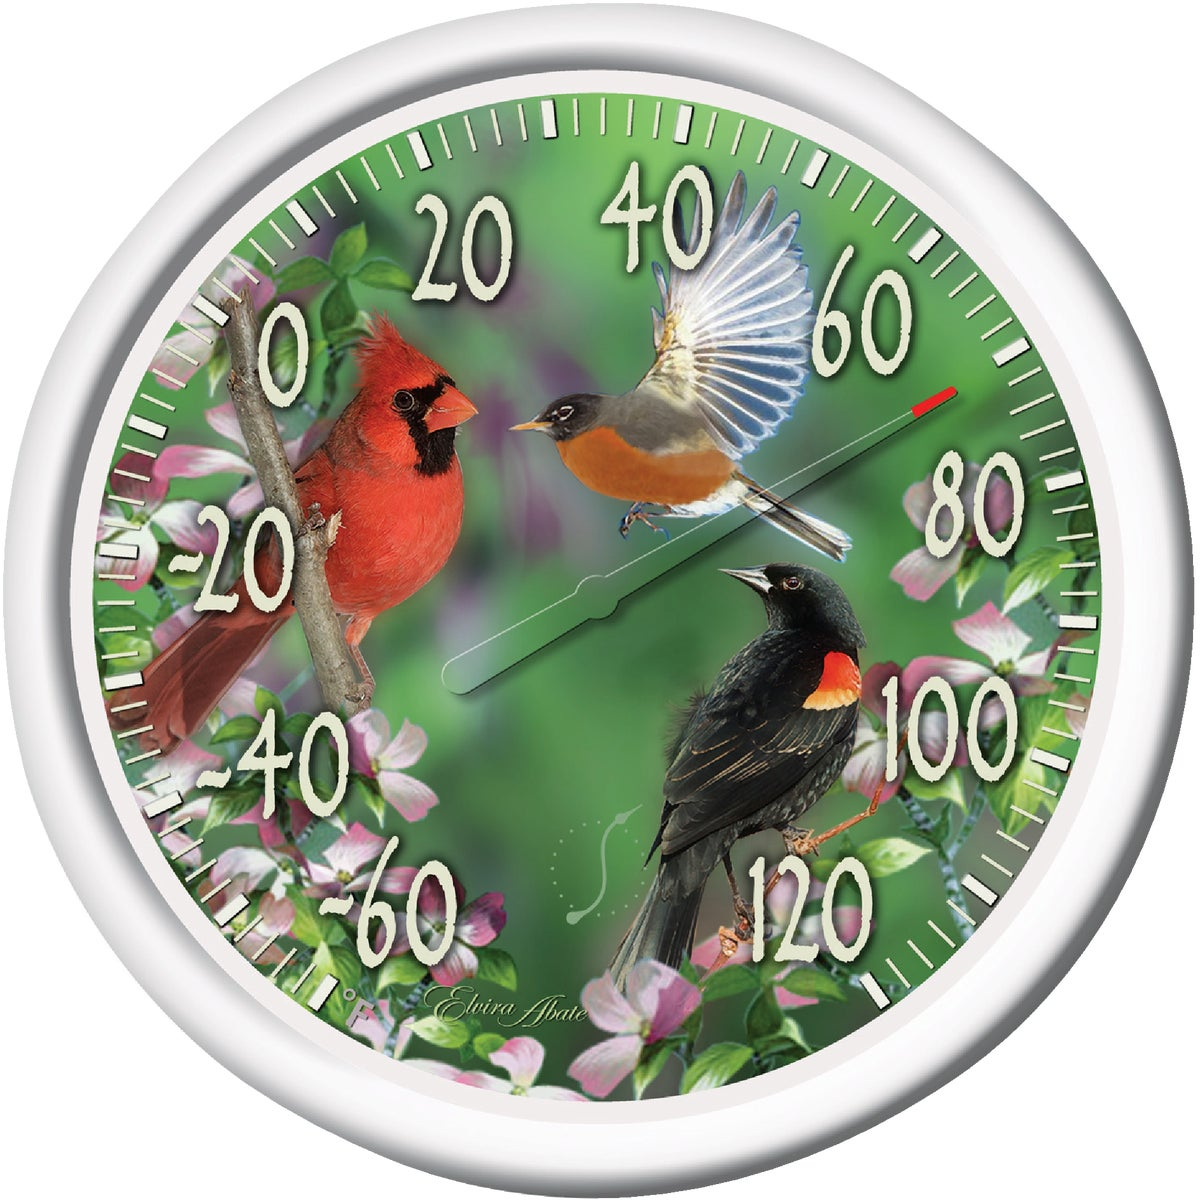 BIRDS DIAL THERMOMETER - 90007-217 by Taylor Precision